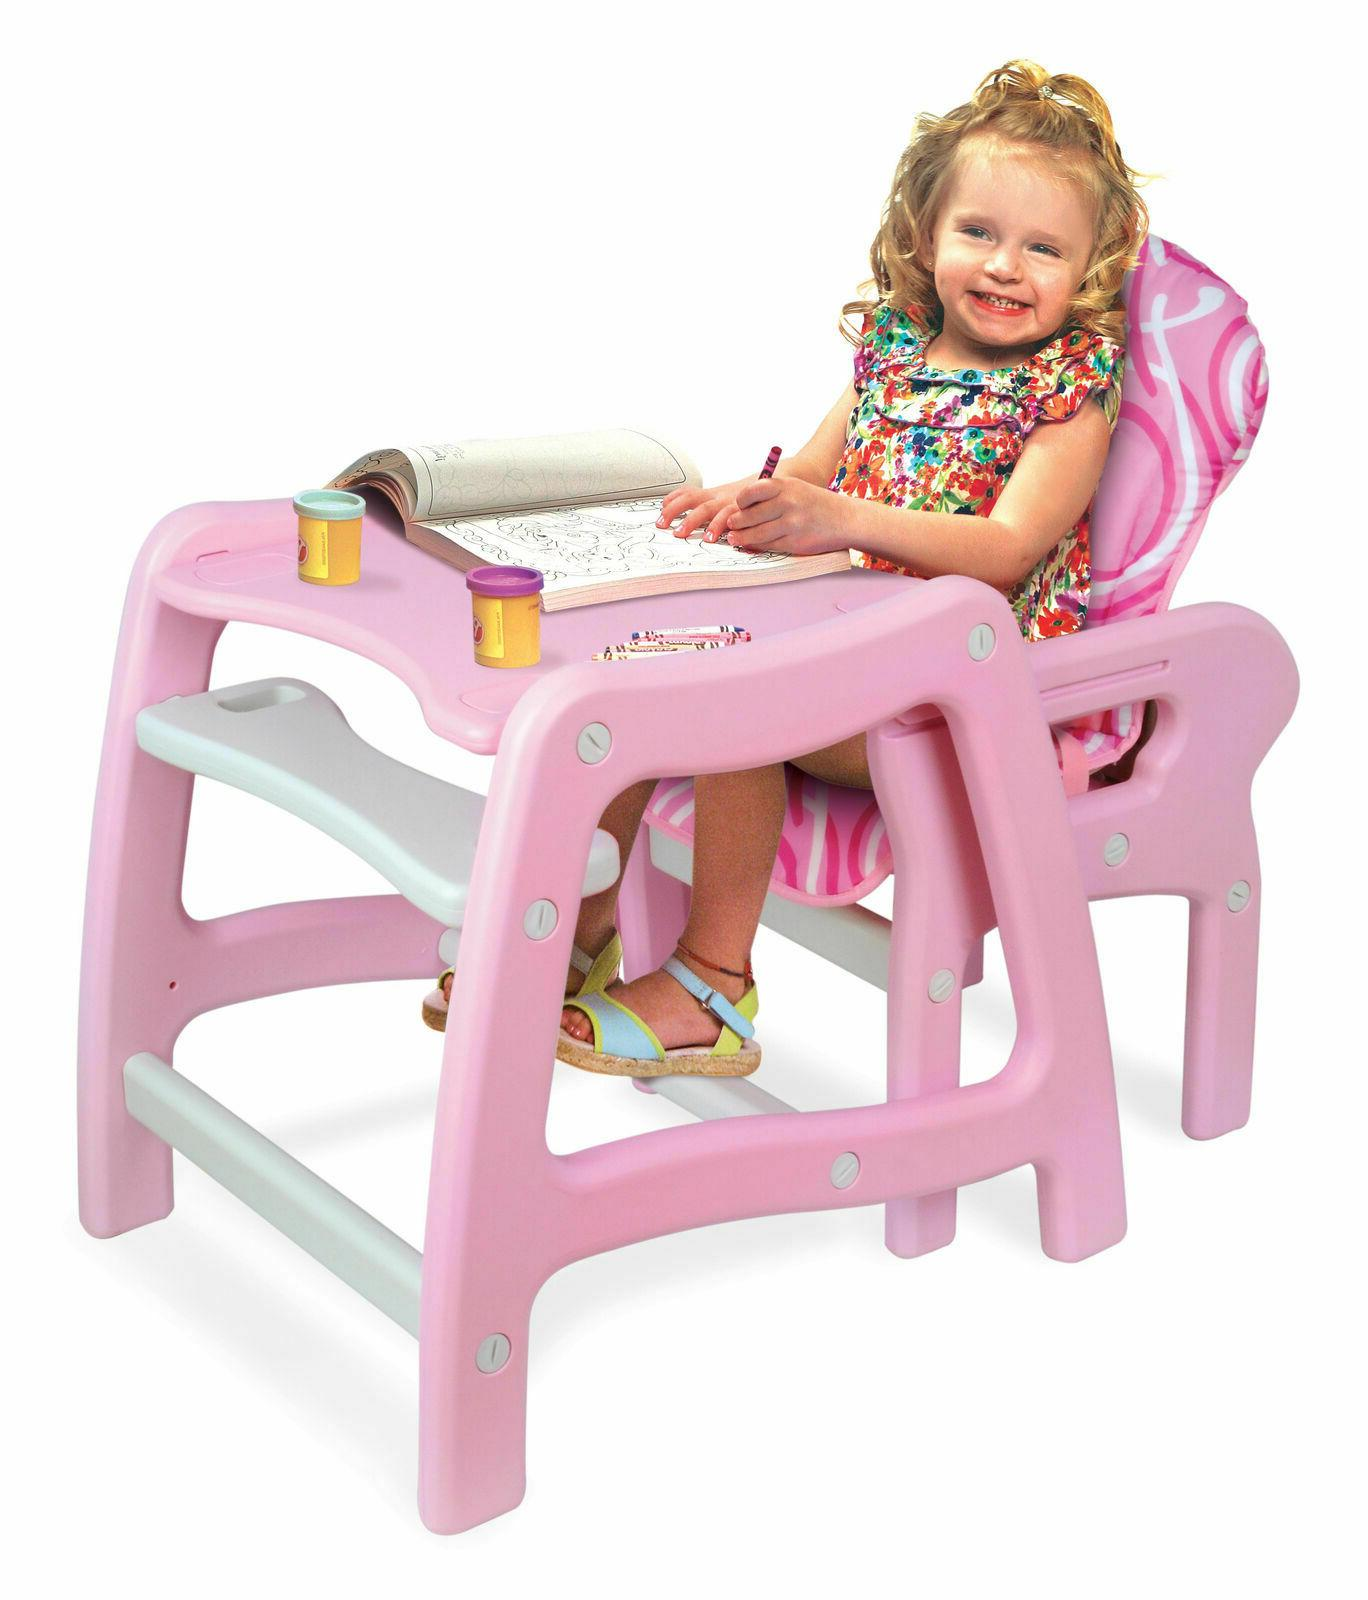 Convertible Feeding Booster Seat Infant Pink